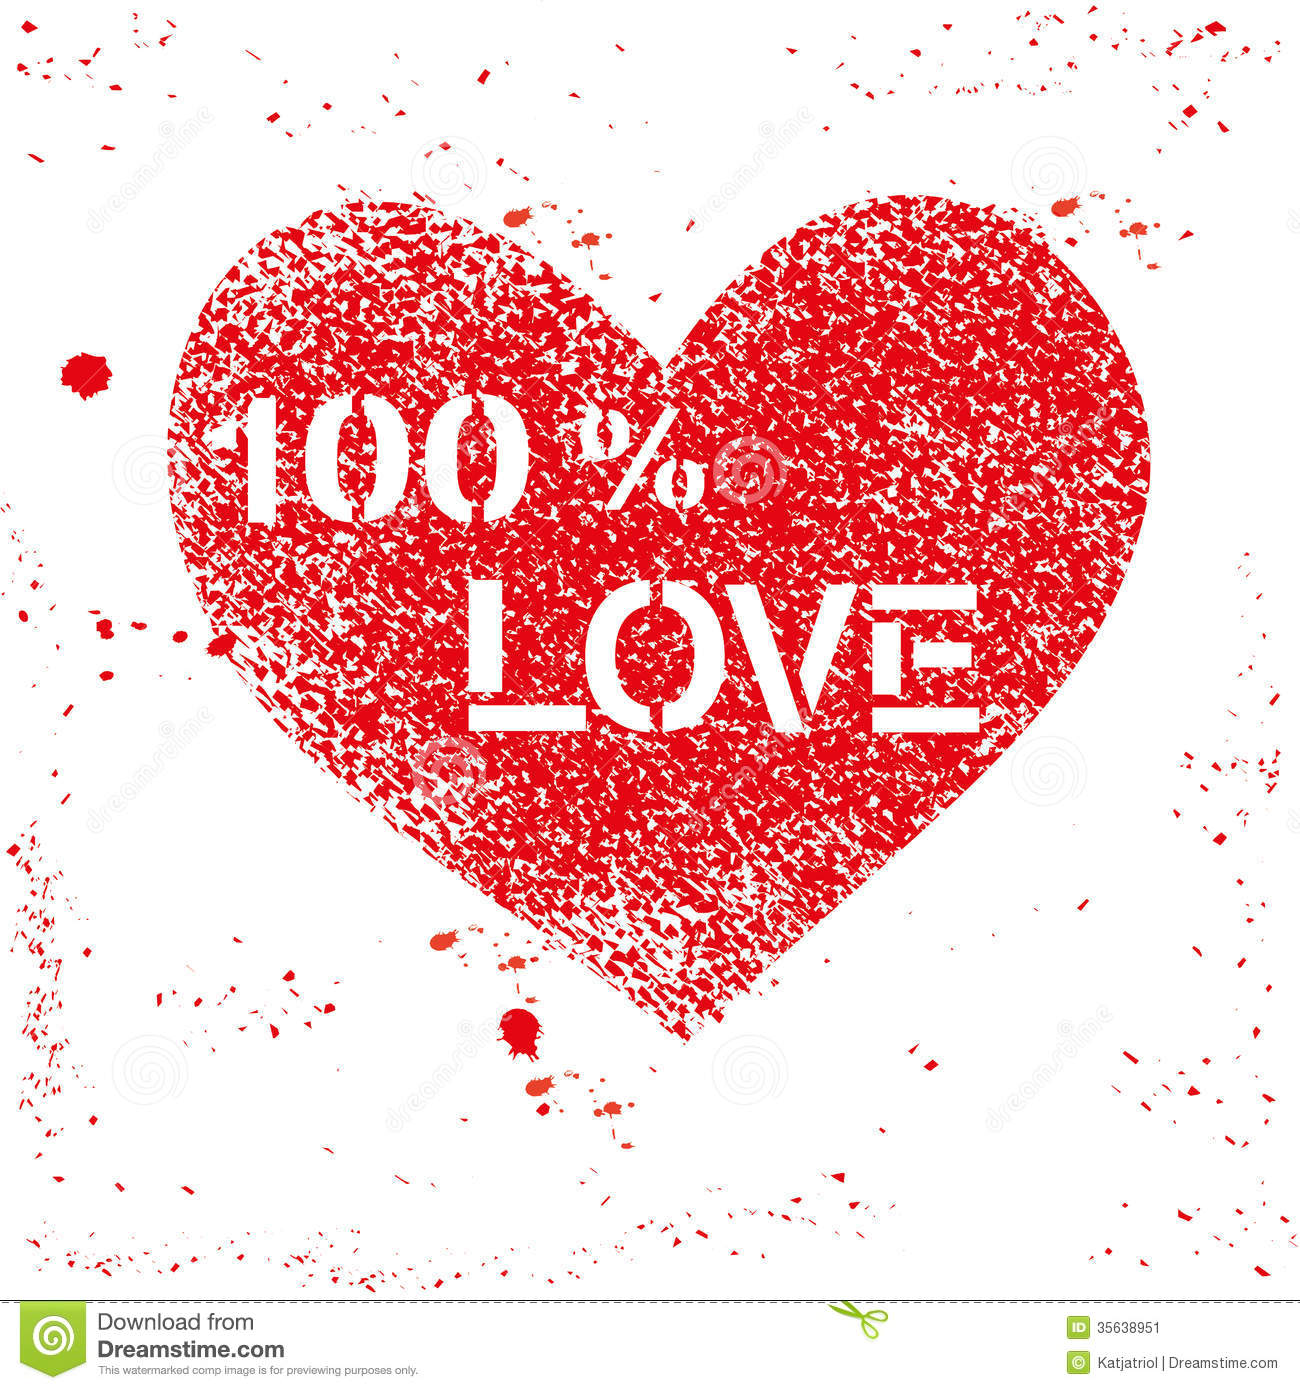 red vector sprayed heart with text stock vector illustration of